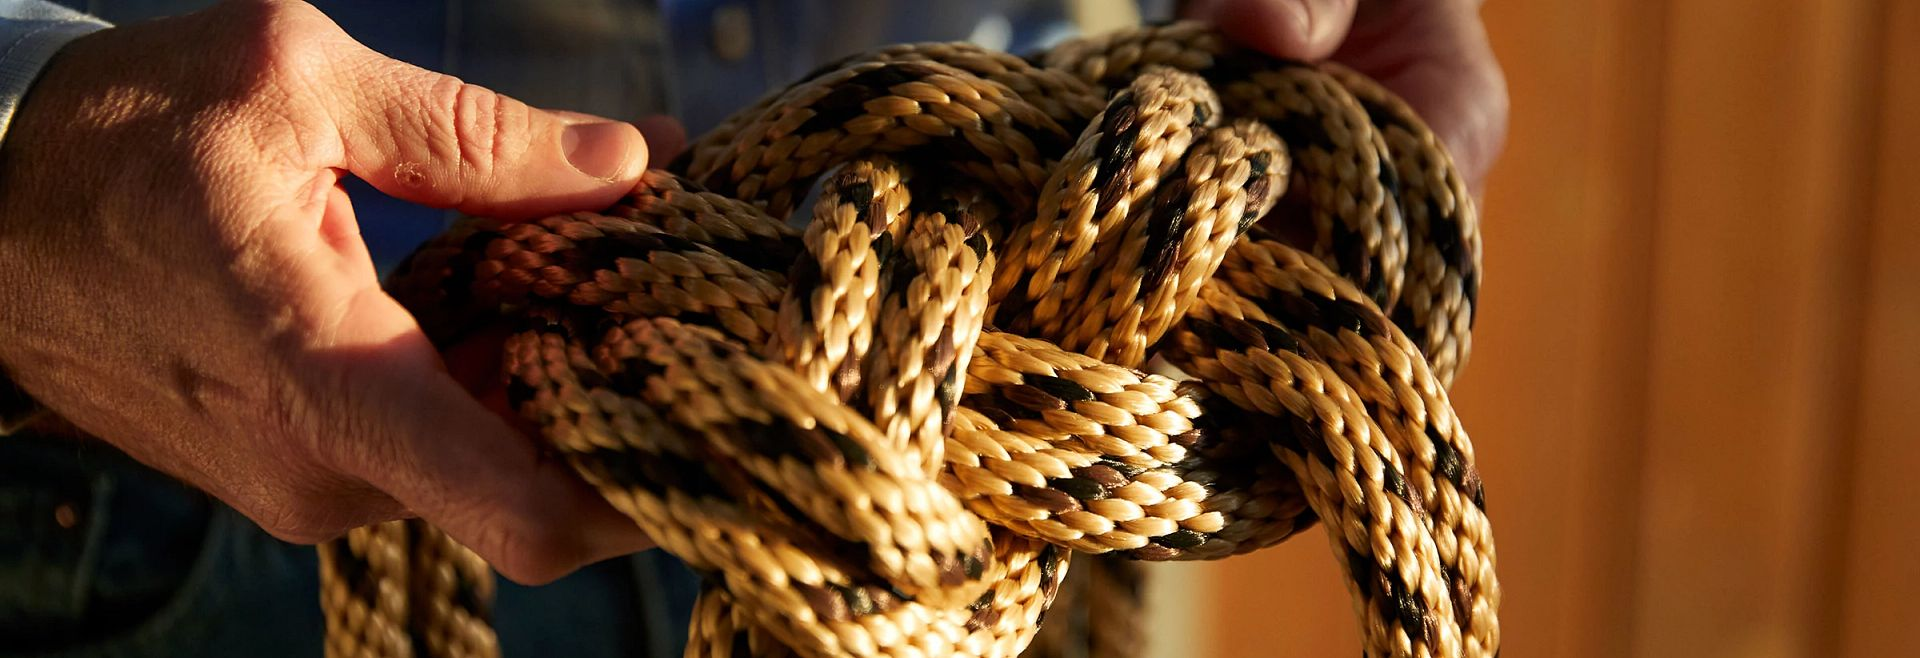 Man's Hands Holding a Knotted Rope